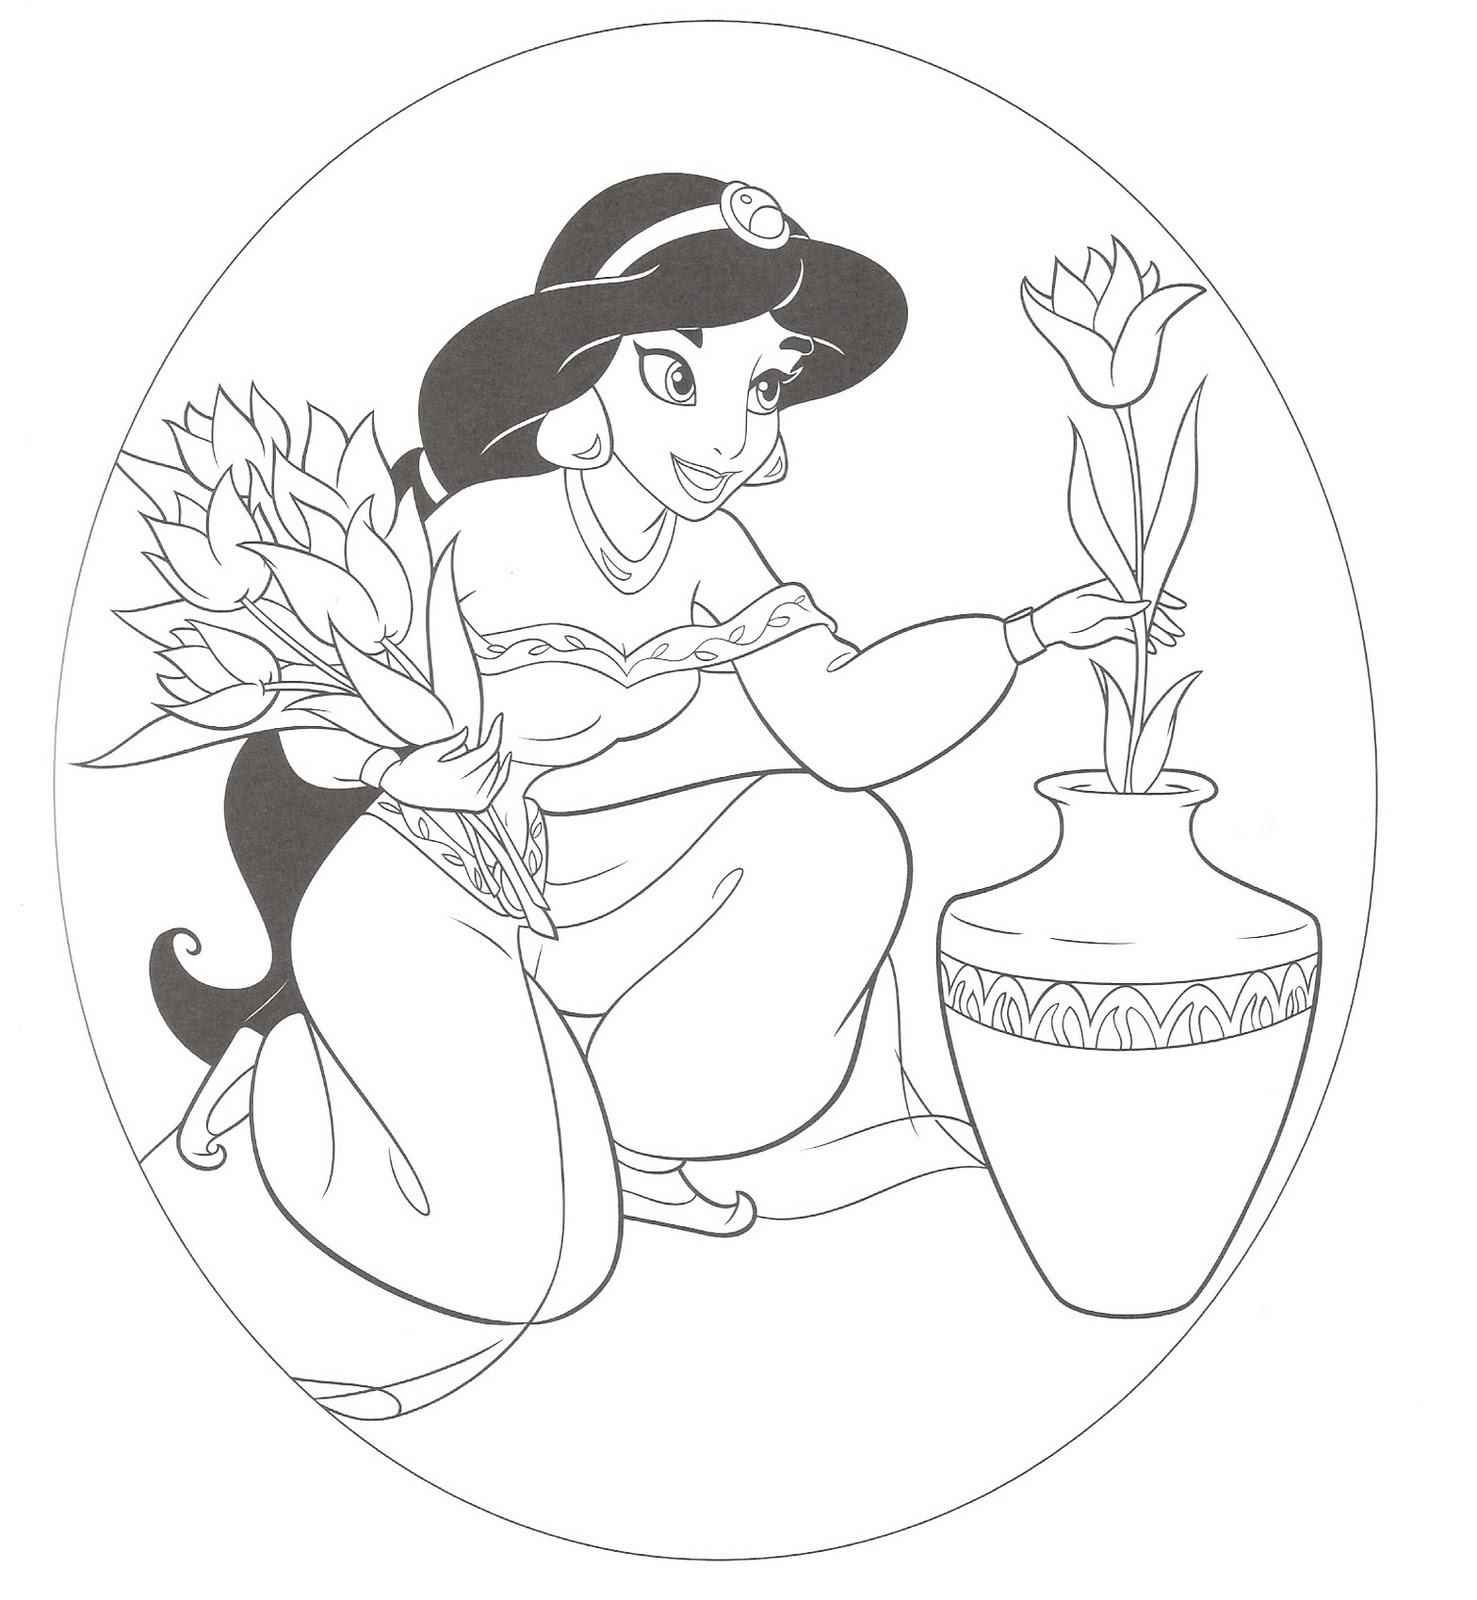 Colouring Pages Disney Princess Free : Disney princess coloring pages for kids